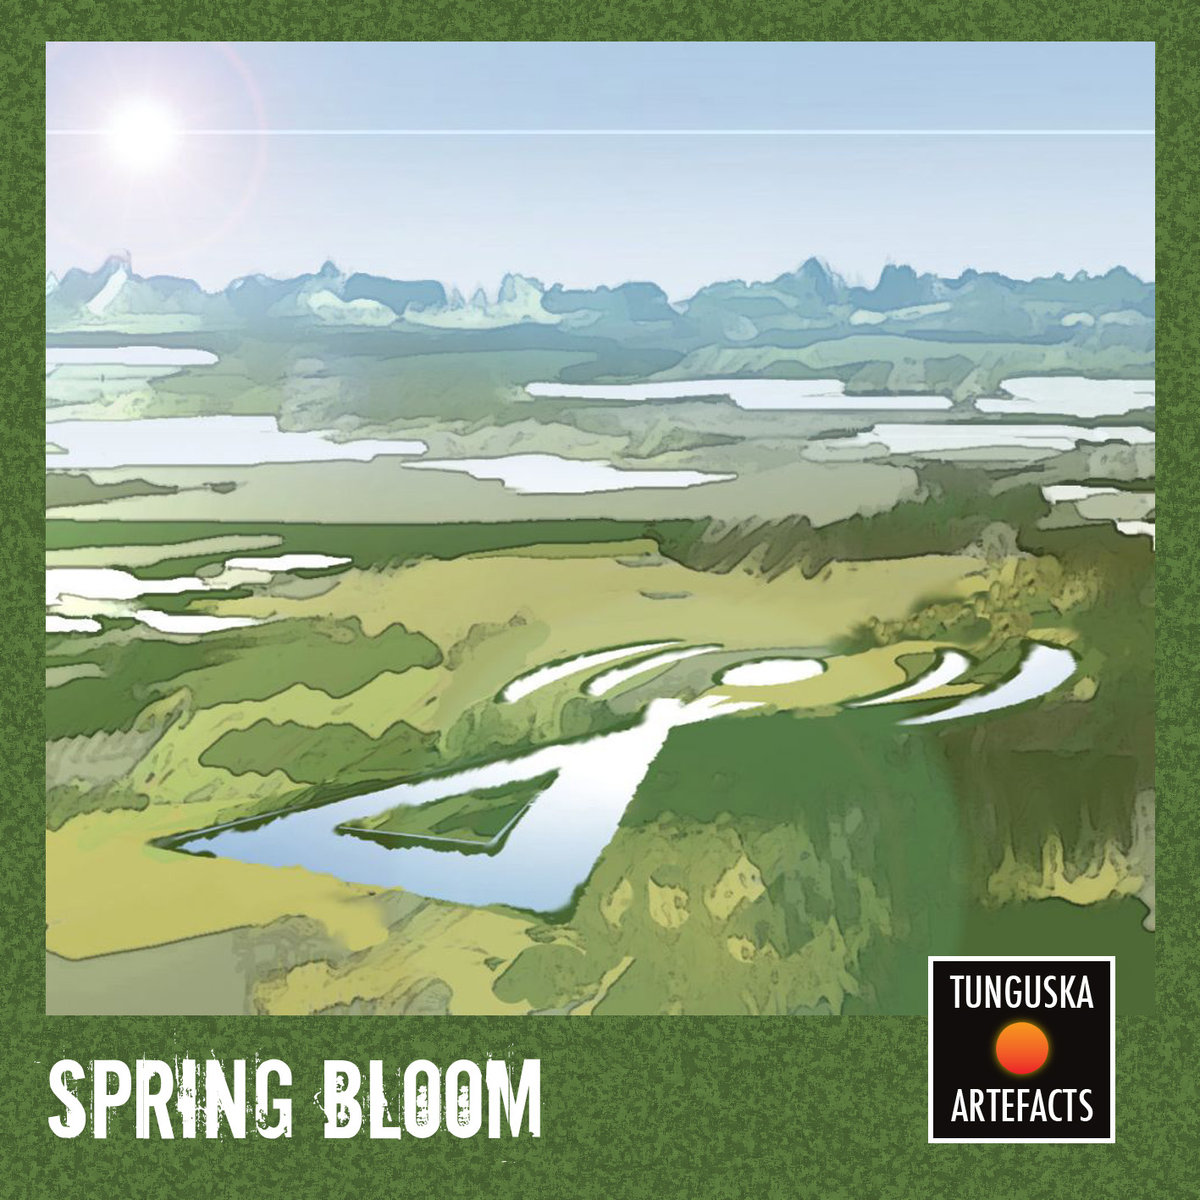 Monocode - On a Roof @ 'Tunguska Artefacts - Spring Bloom' album (electronic, ambient)